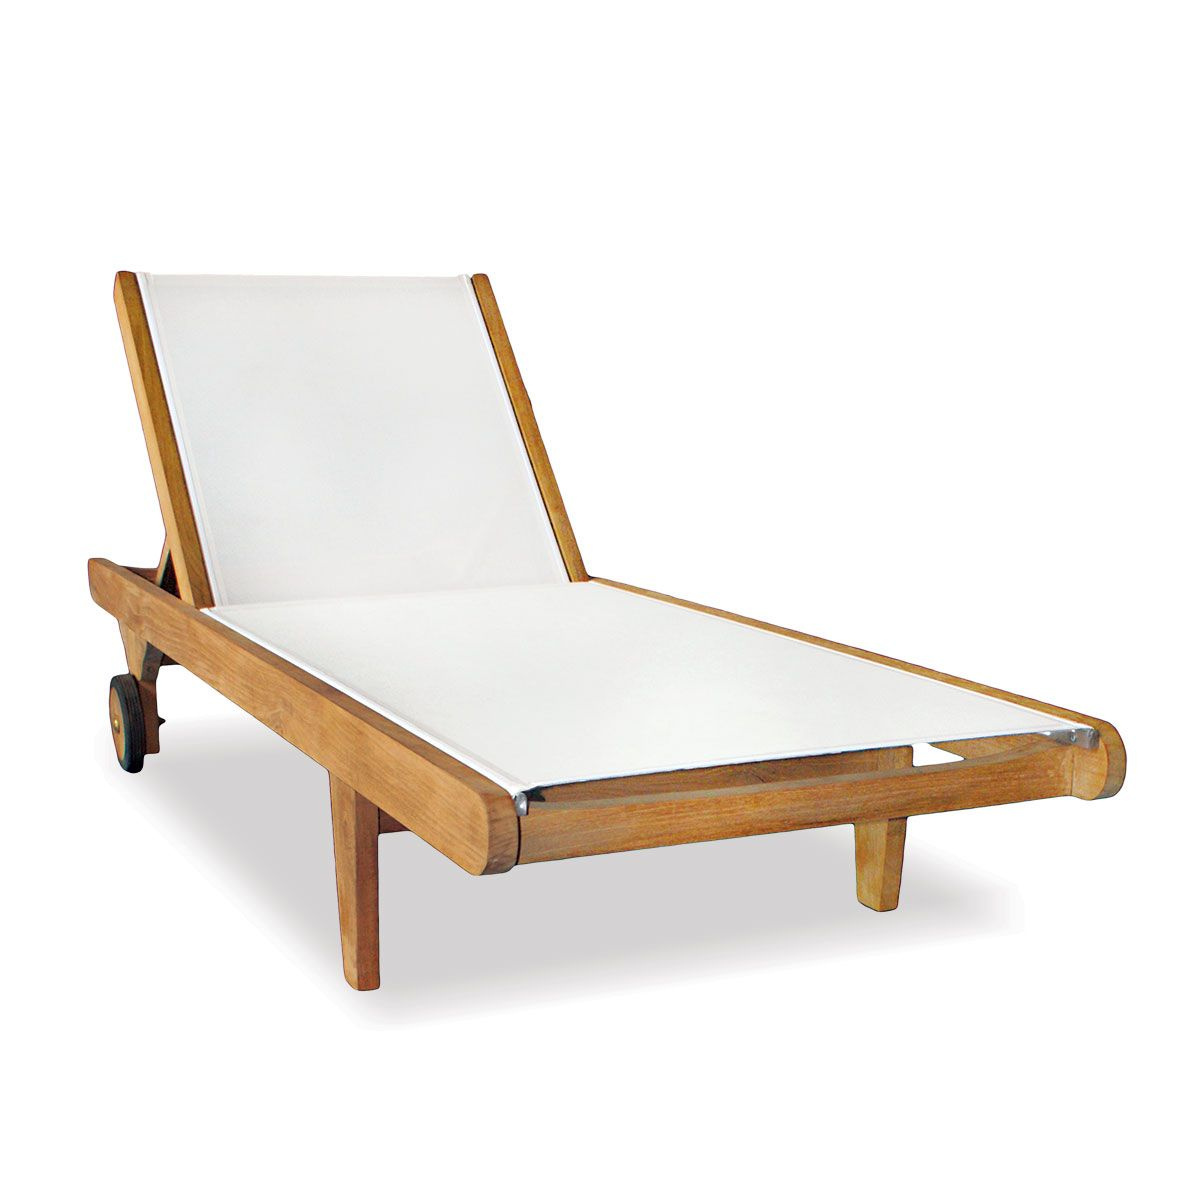 Teak Chaise Lounge Chairs Teak Chaise Lounge With Outdoor Sling Seneca Collection For